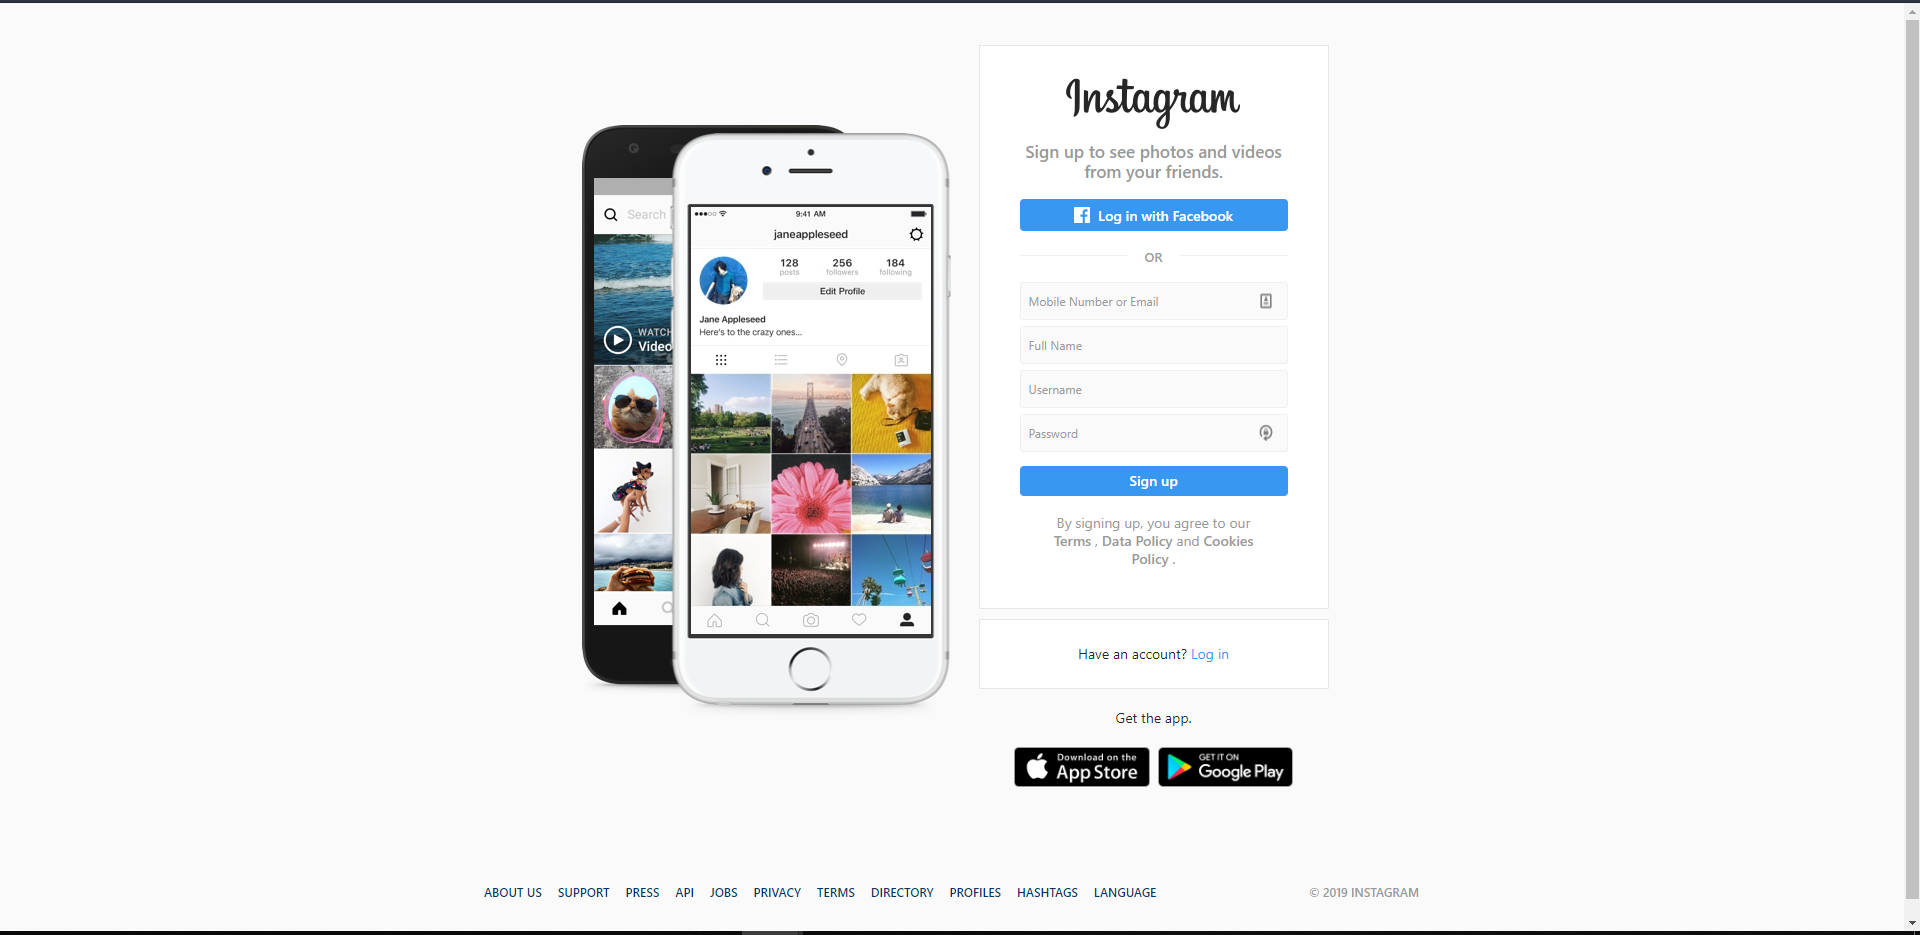 Log in IG from Desktop